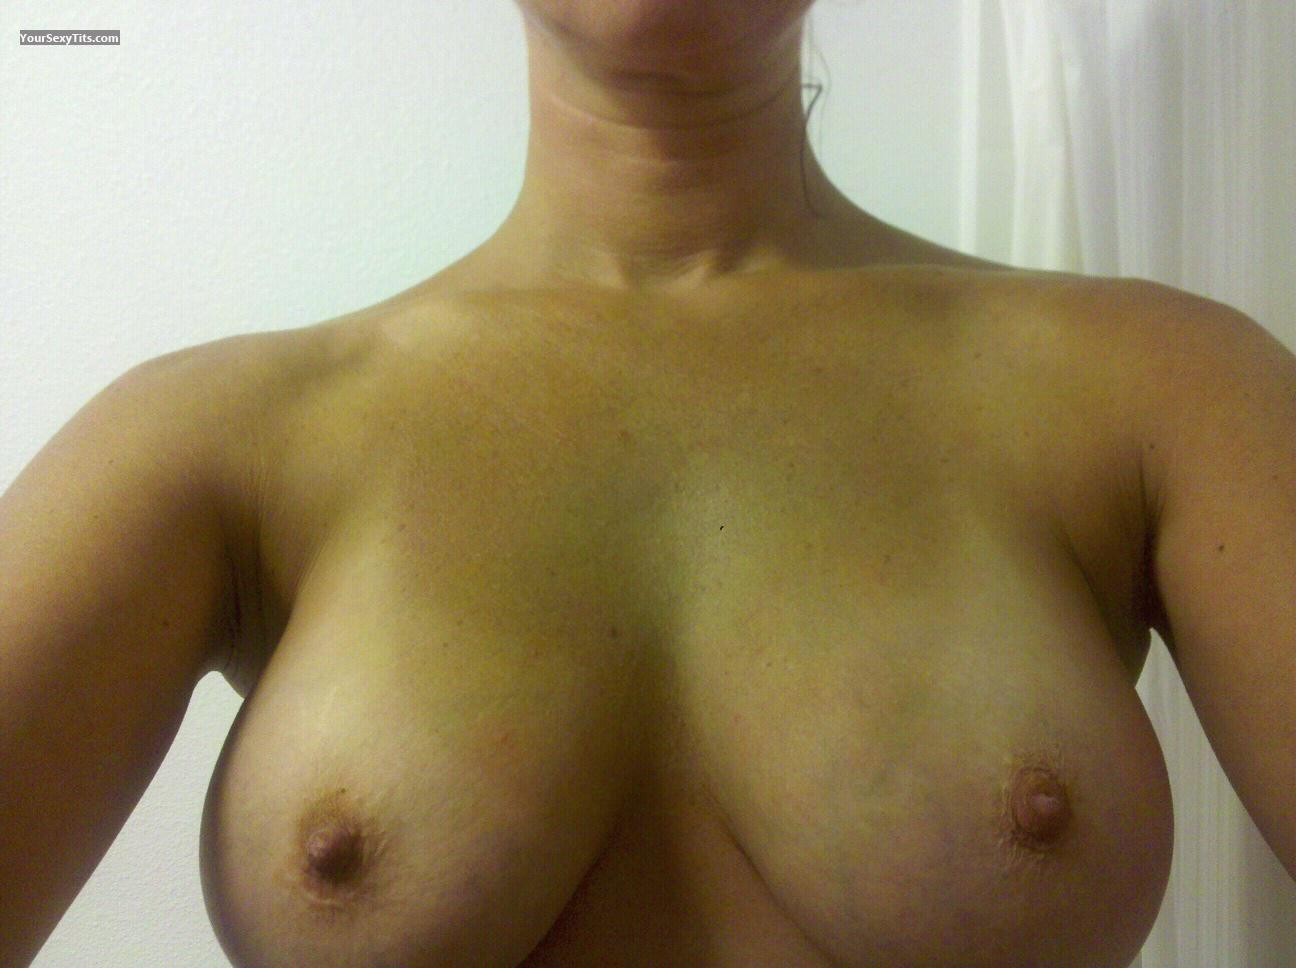 Tit Flash: My Medium Tits By IPhone (Selfie) - Liztitts from United States